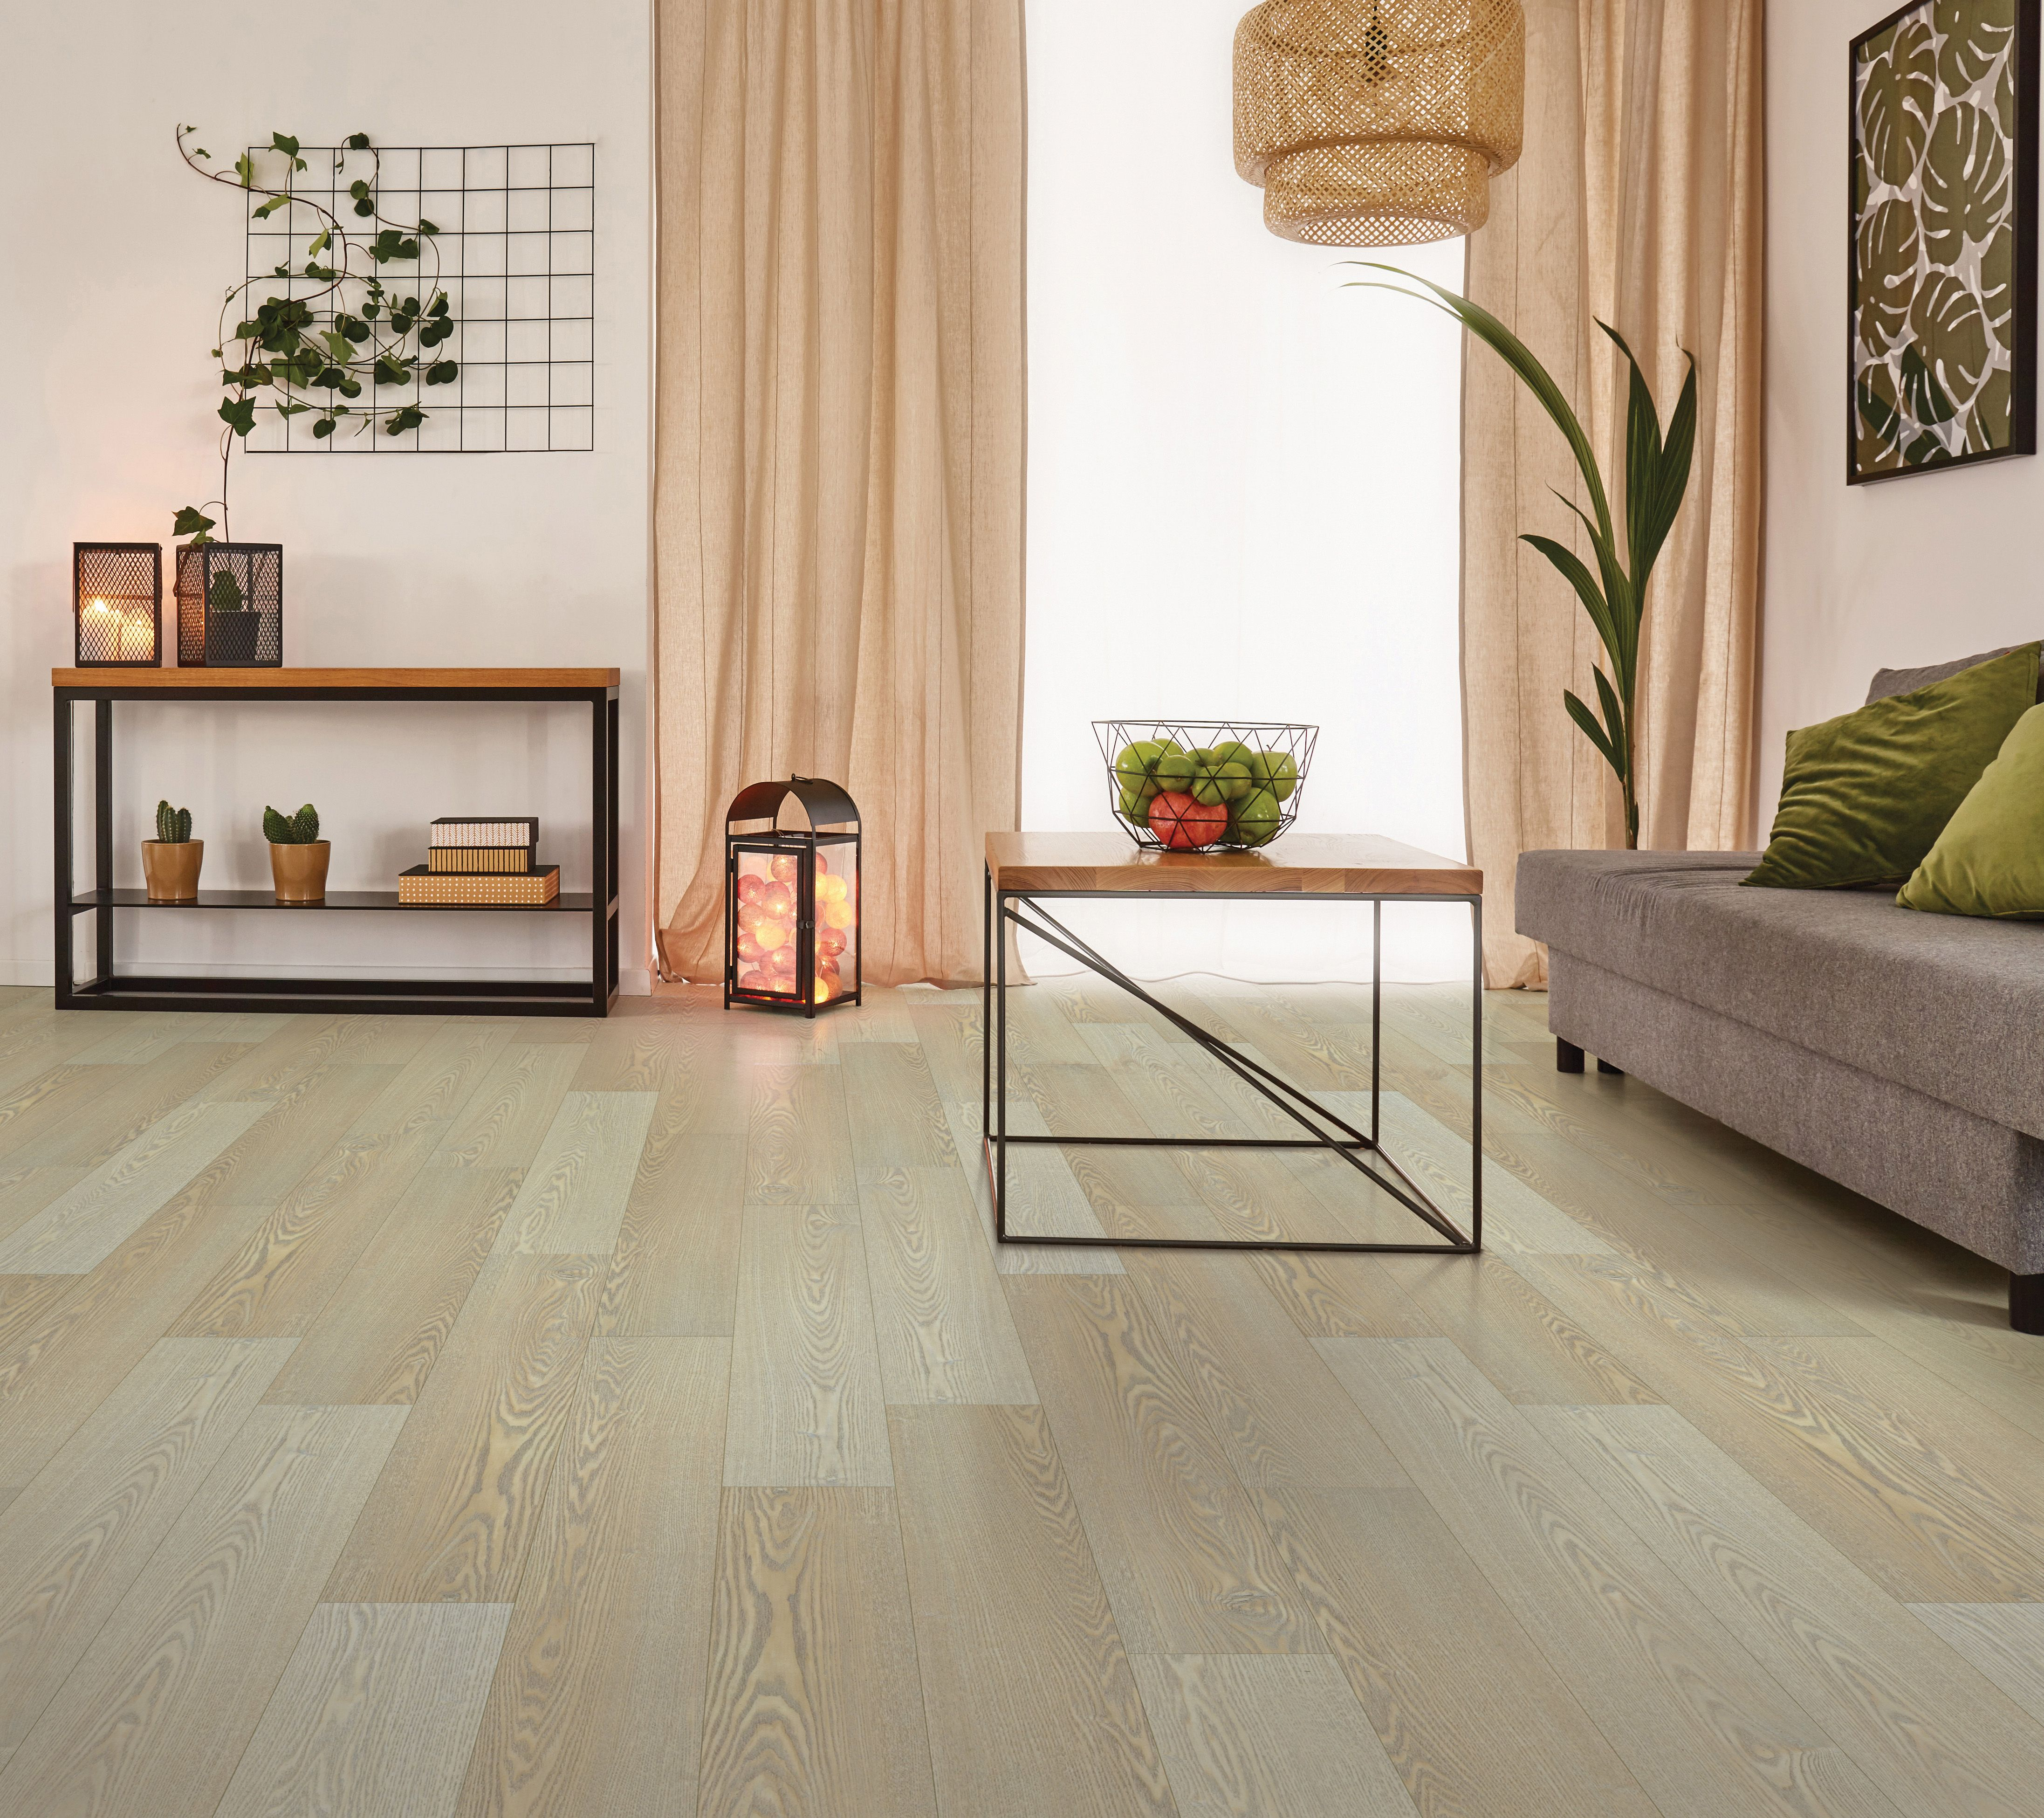 Stainmaster pet protect luxury vinyl tile lvt lvp plank frosted stainmaster pet protect luxury vinyl tile lvt lvp plank frosted oak dailygadgetfo Images